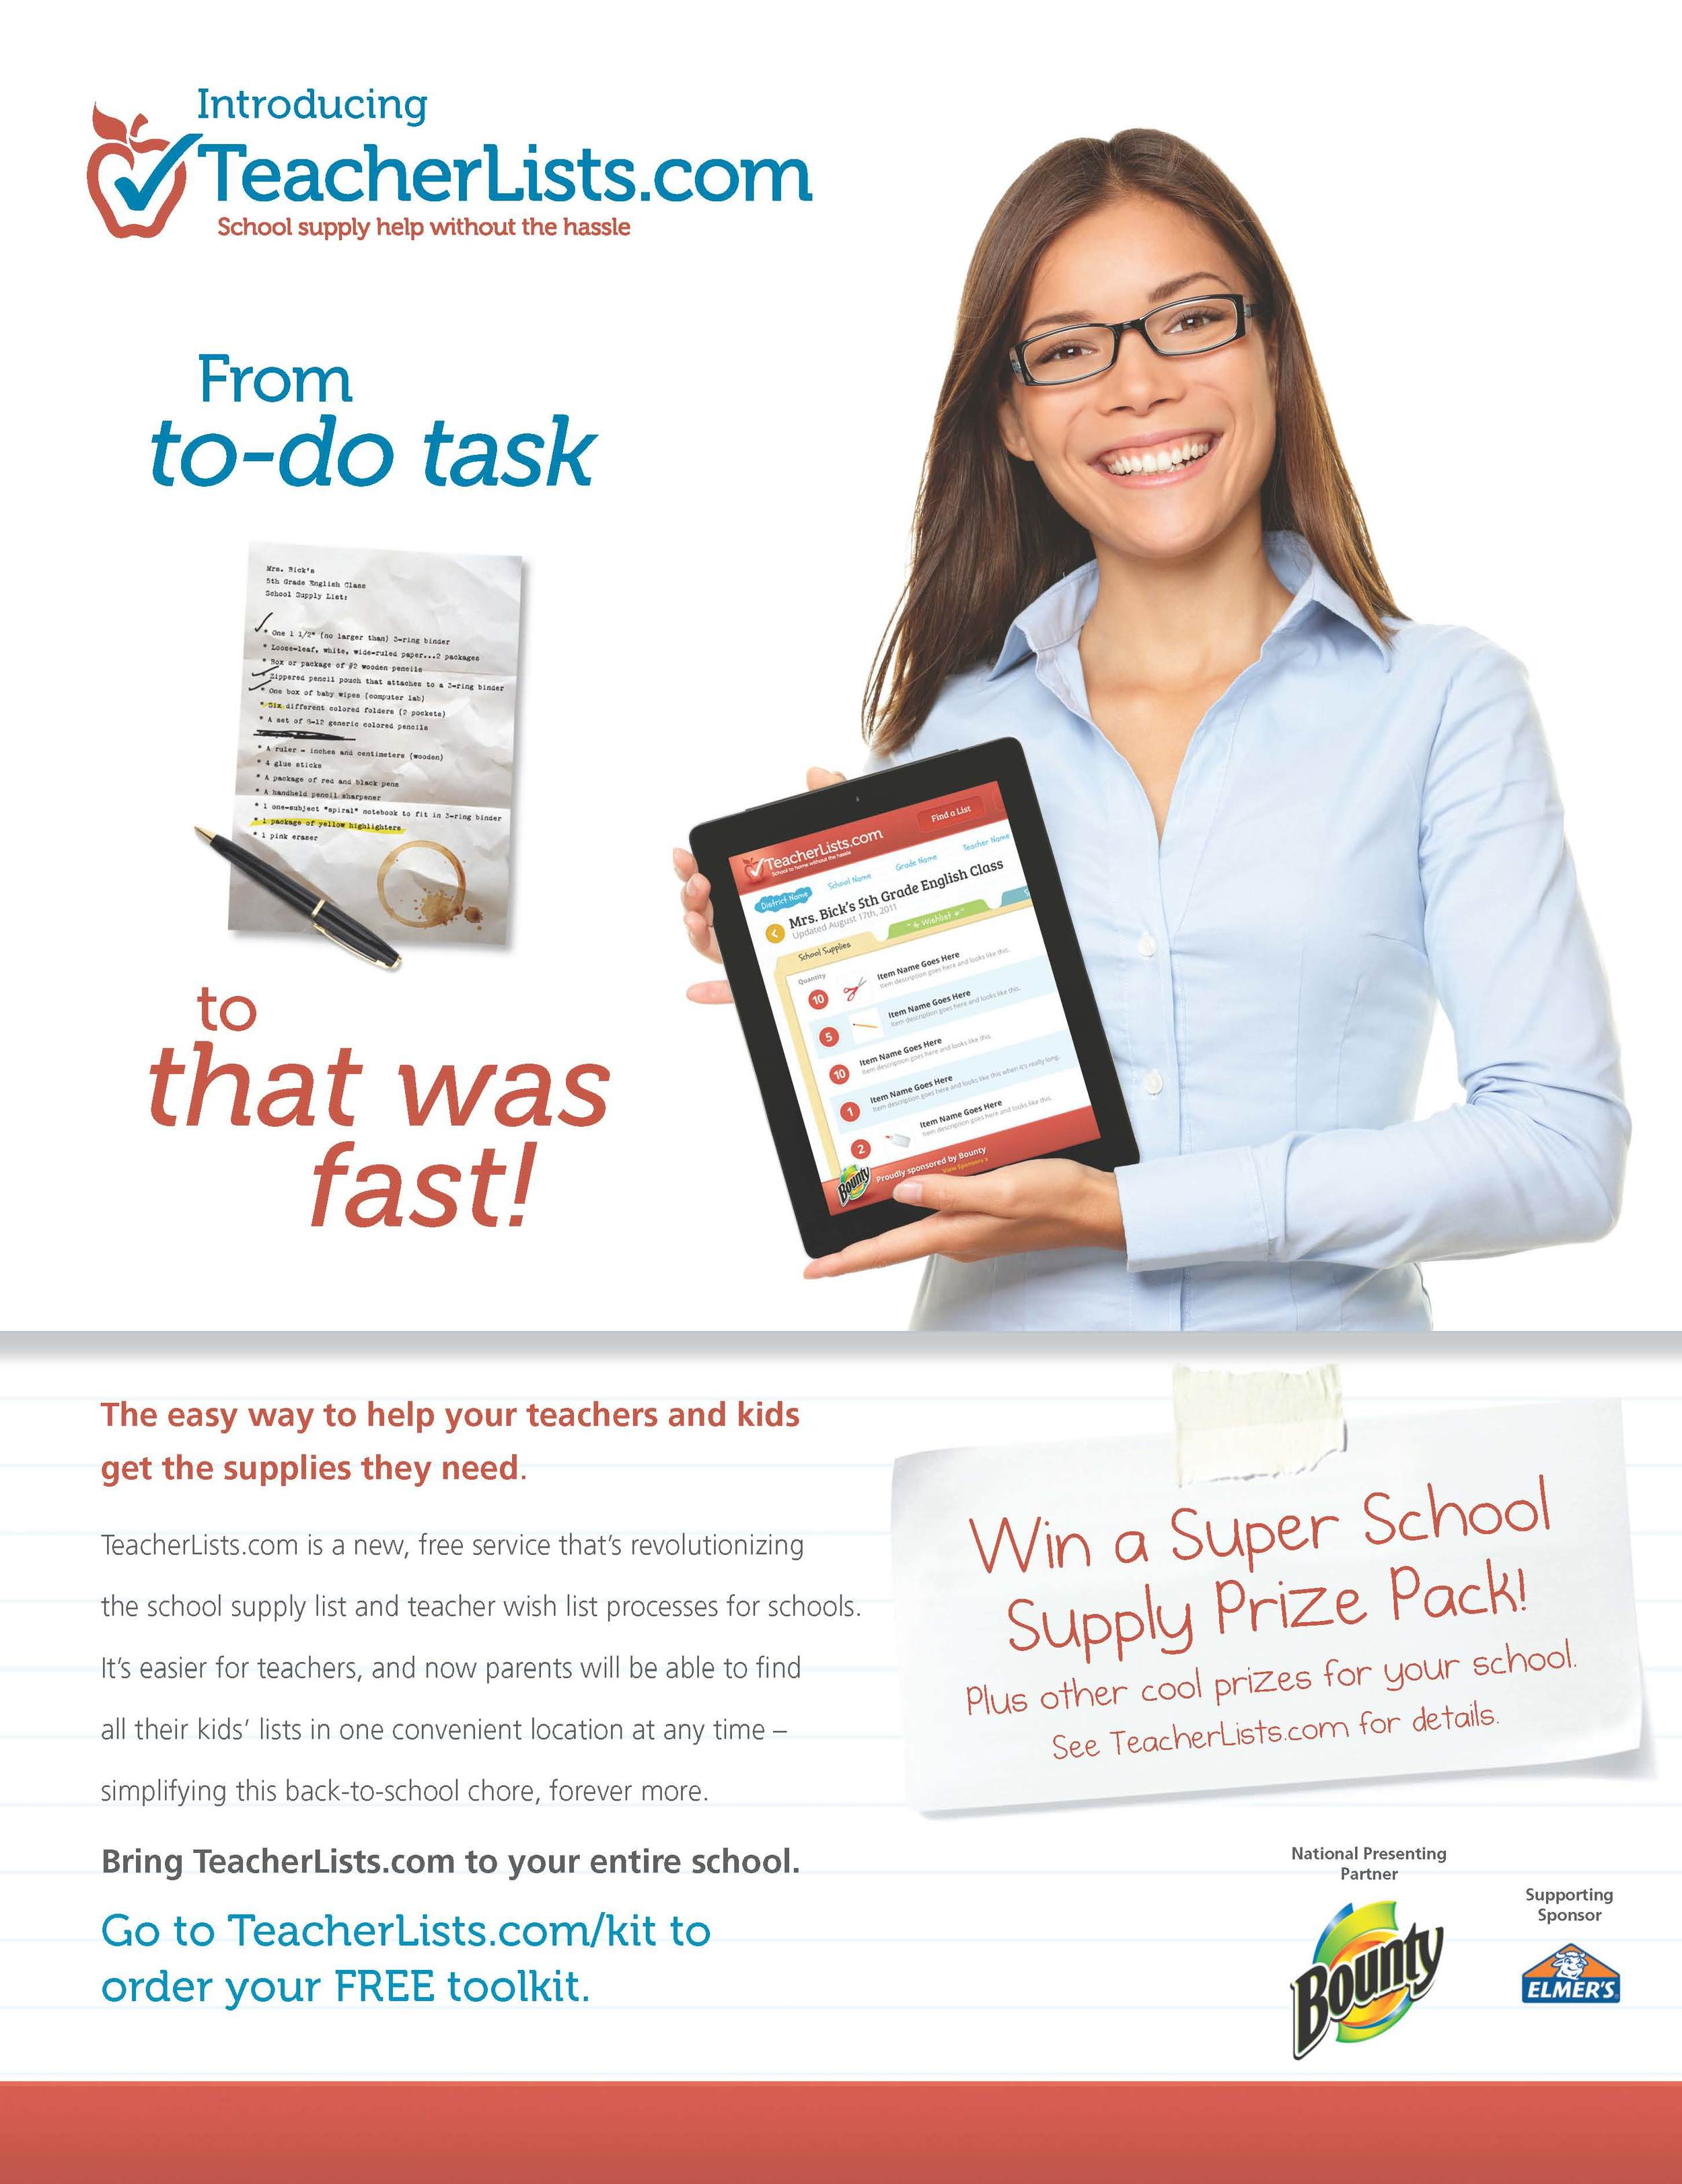 TeacherLists.com Ad Campaign